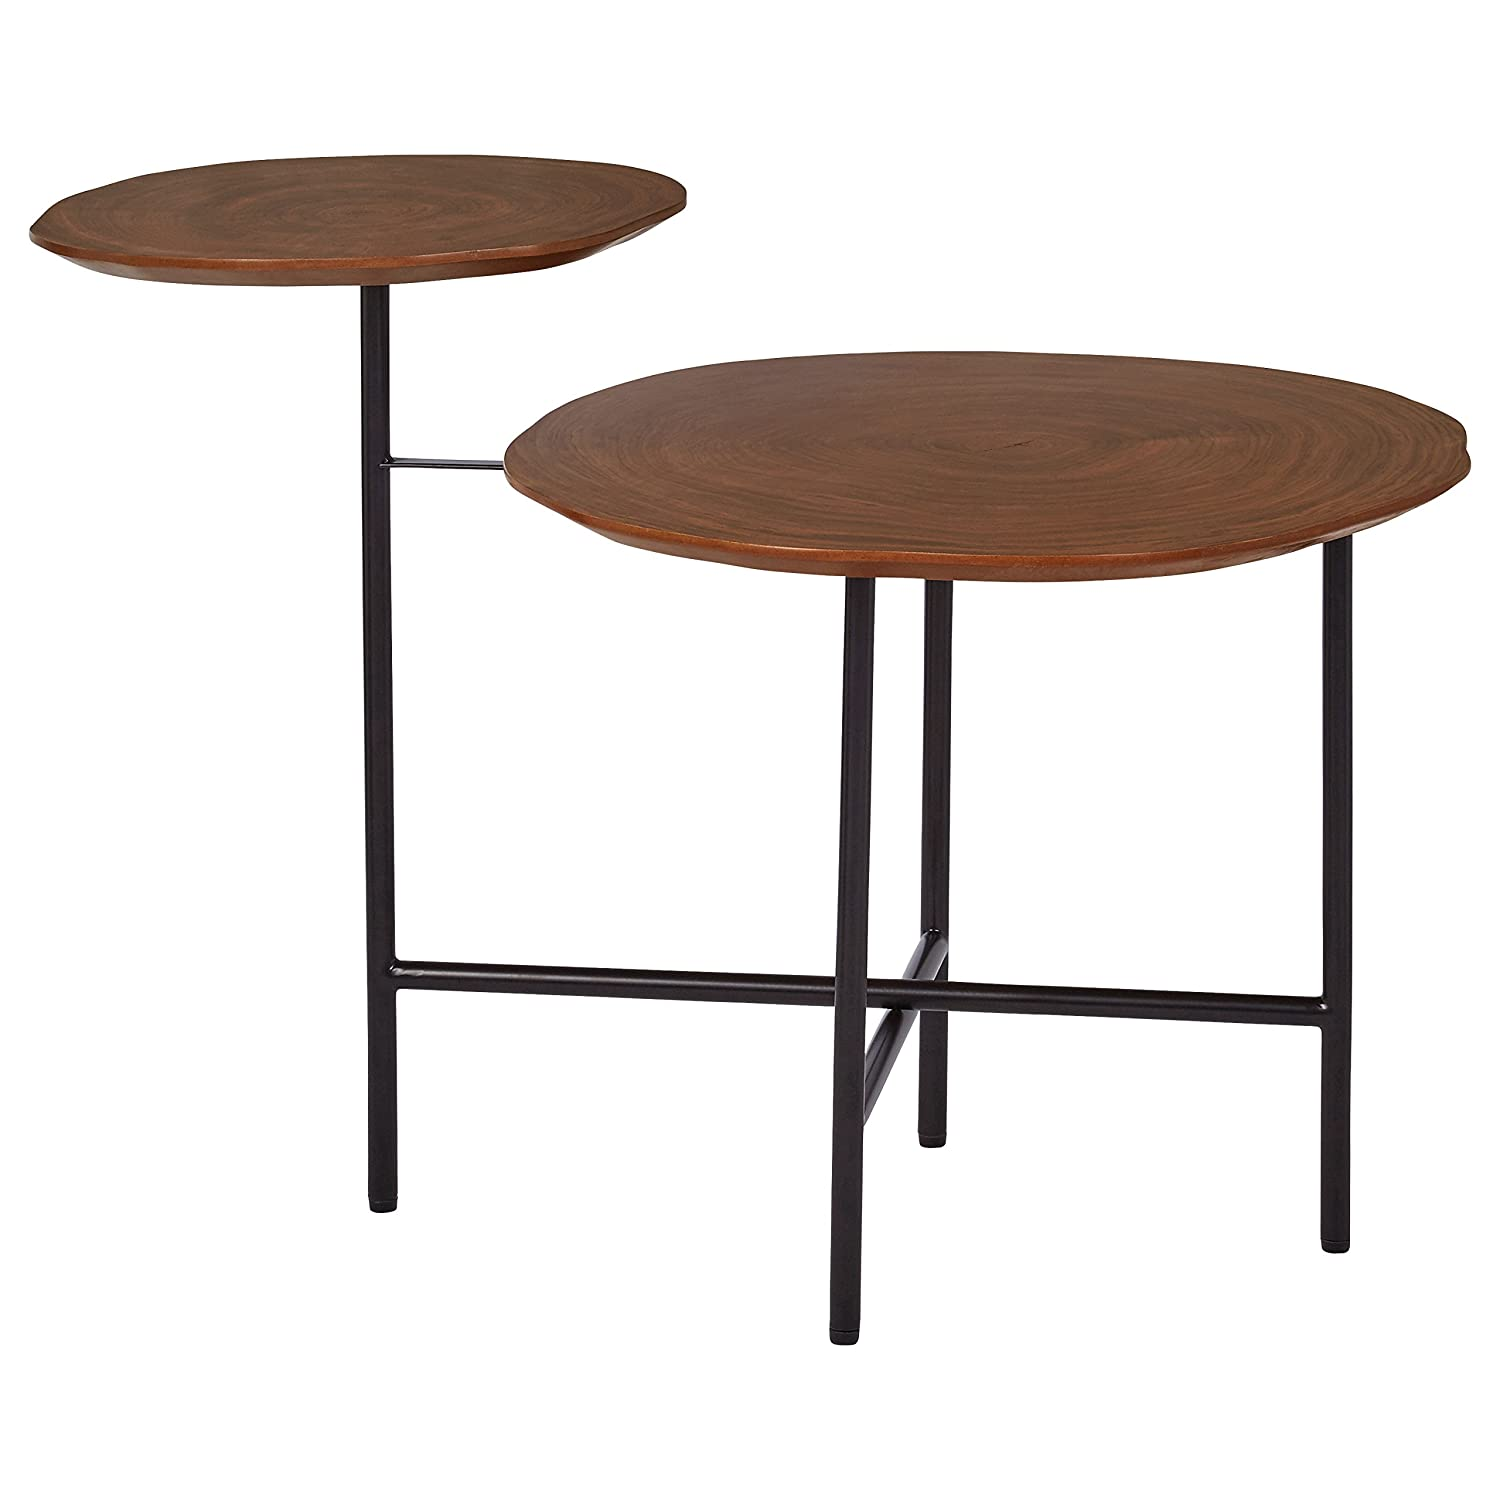 "Rivet Mid-Century Modern Wood and Metal 2-Tiered Side End Accent Table, 20""W, Walnut"